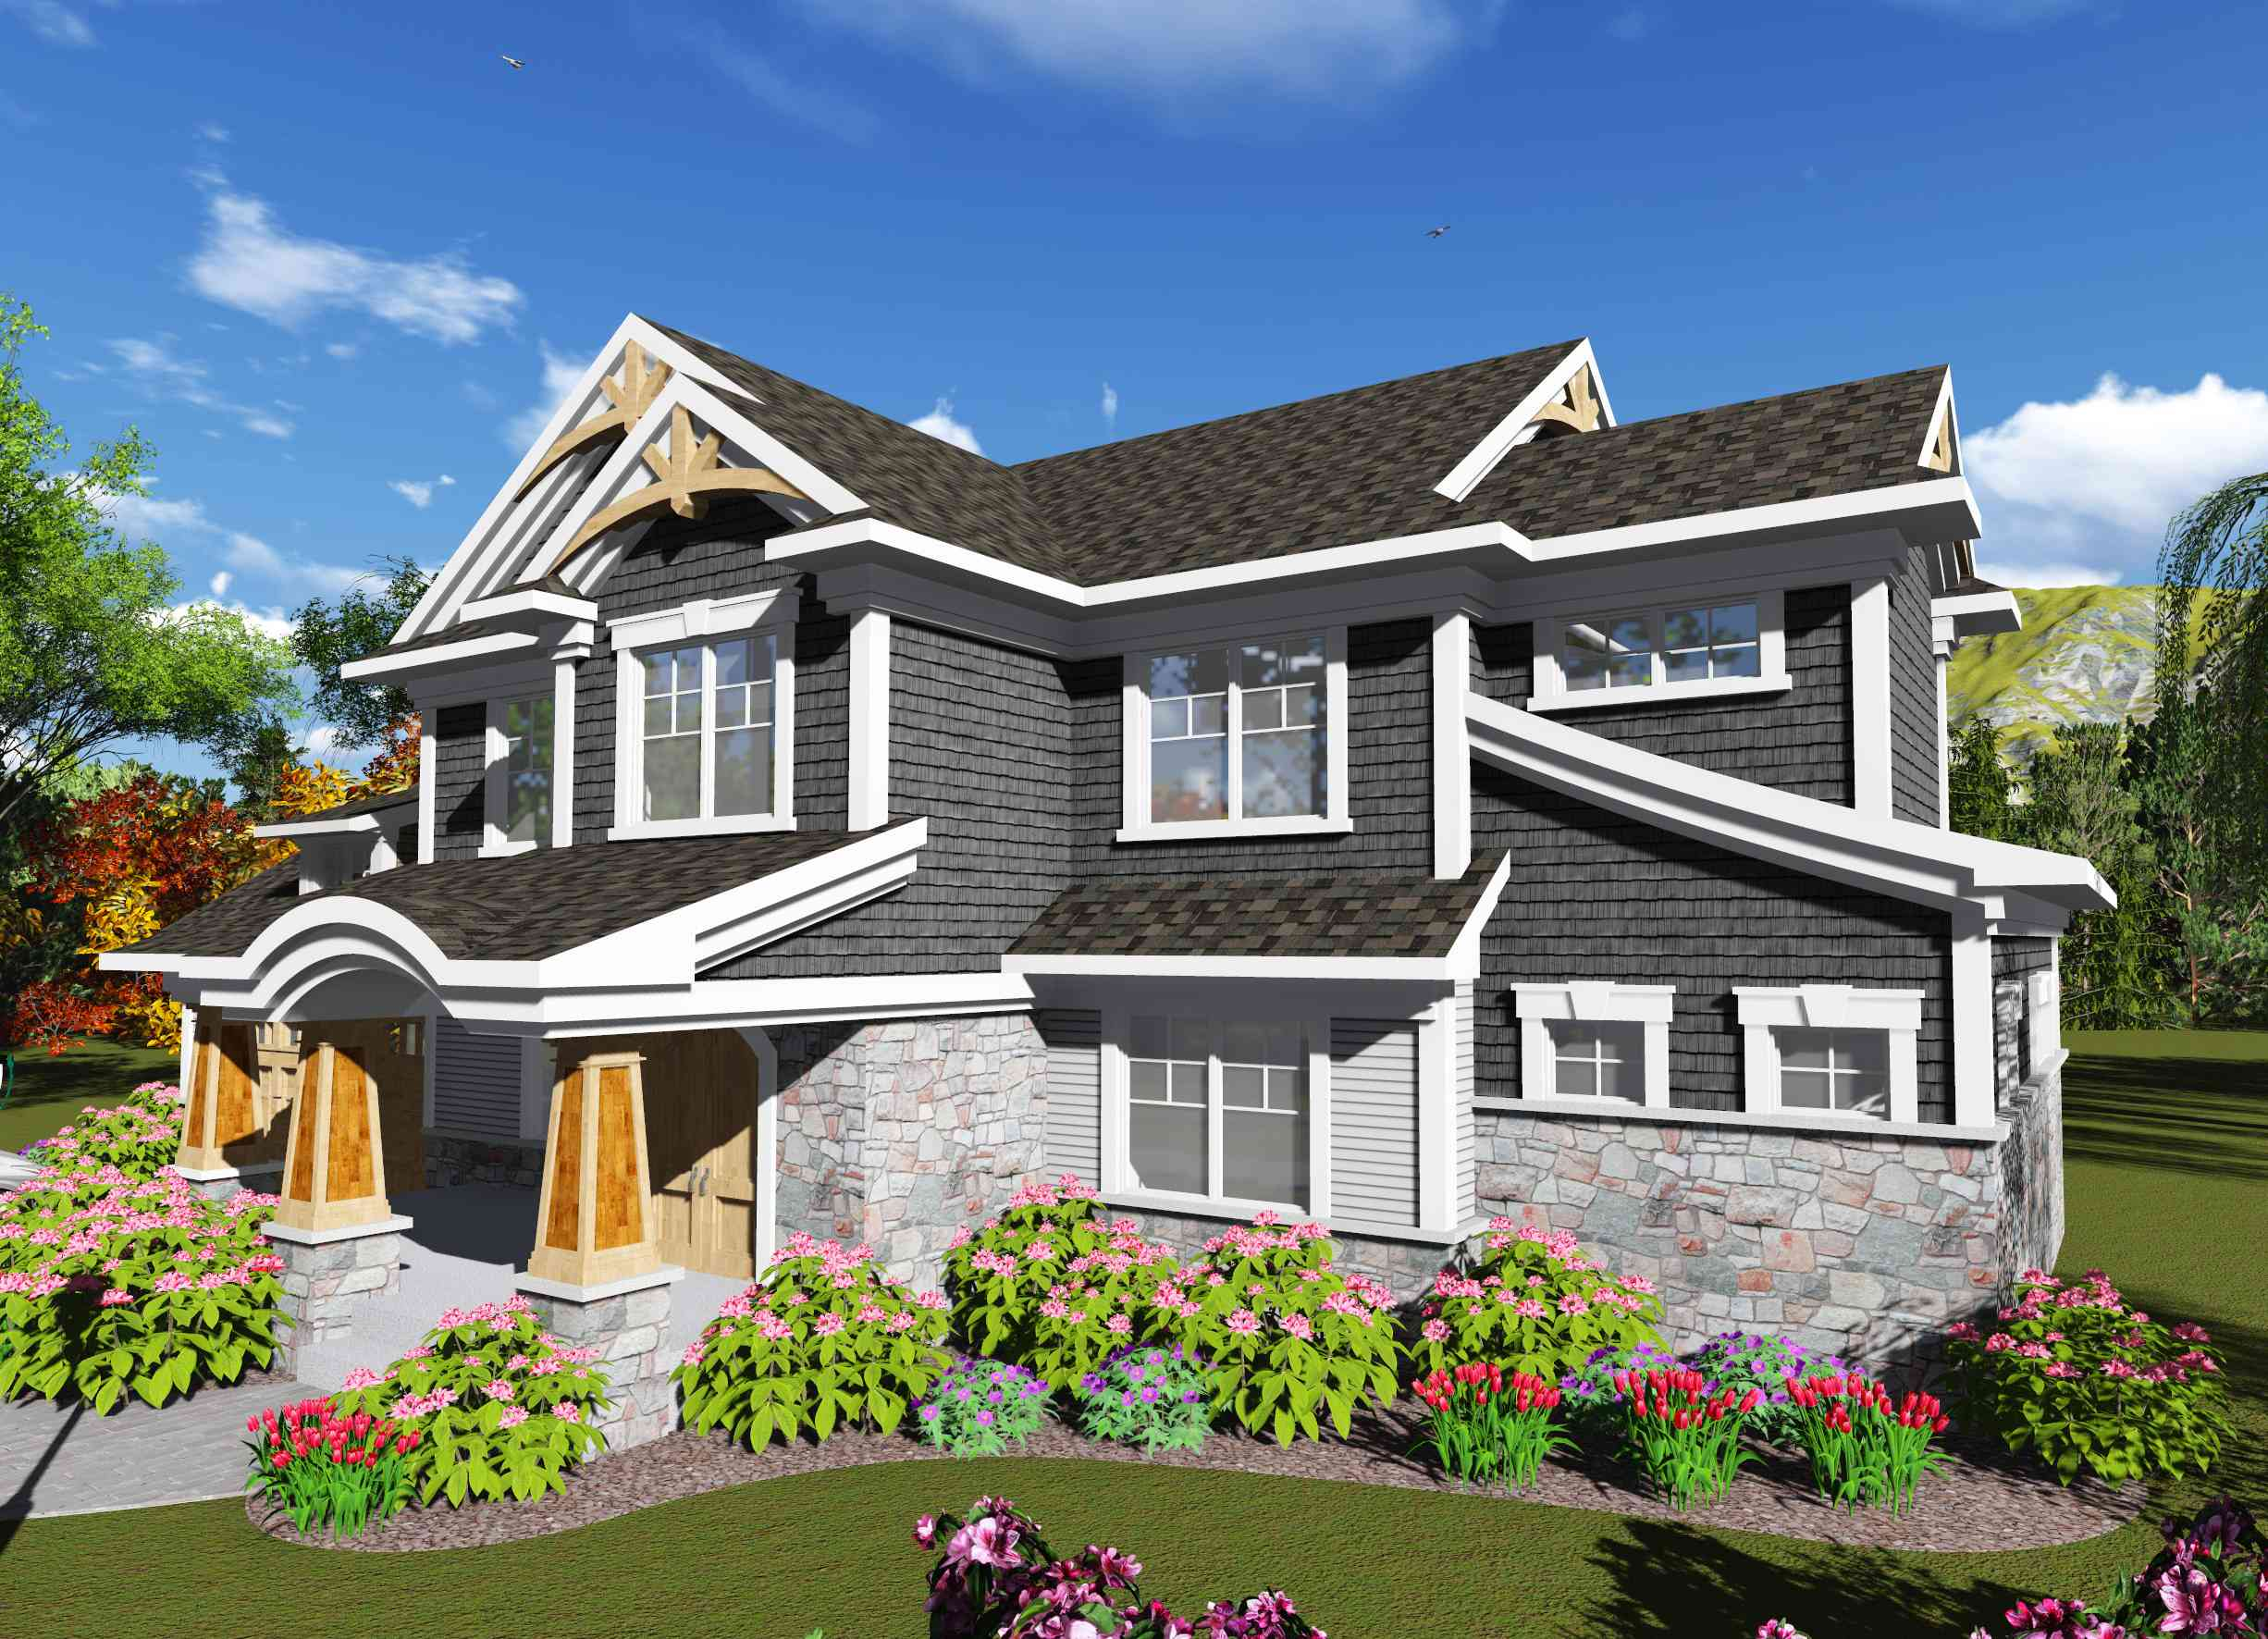 2 Story Craftsman With 4 Bedrooms 89993ah